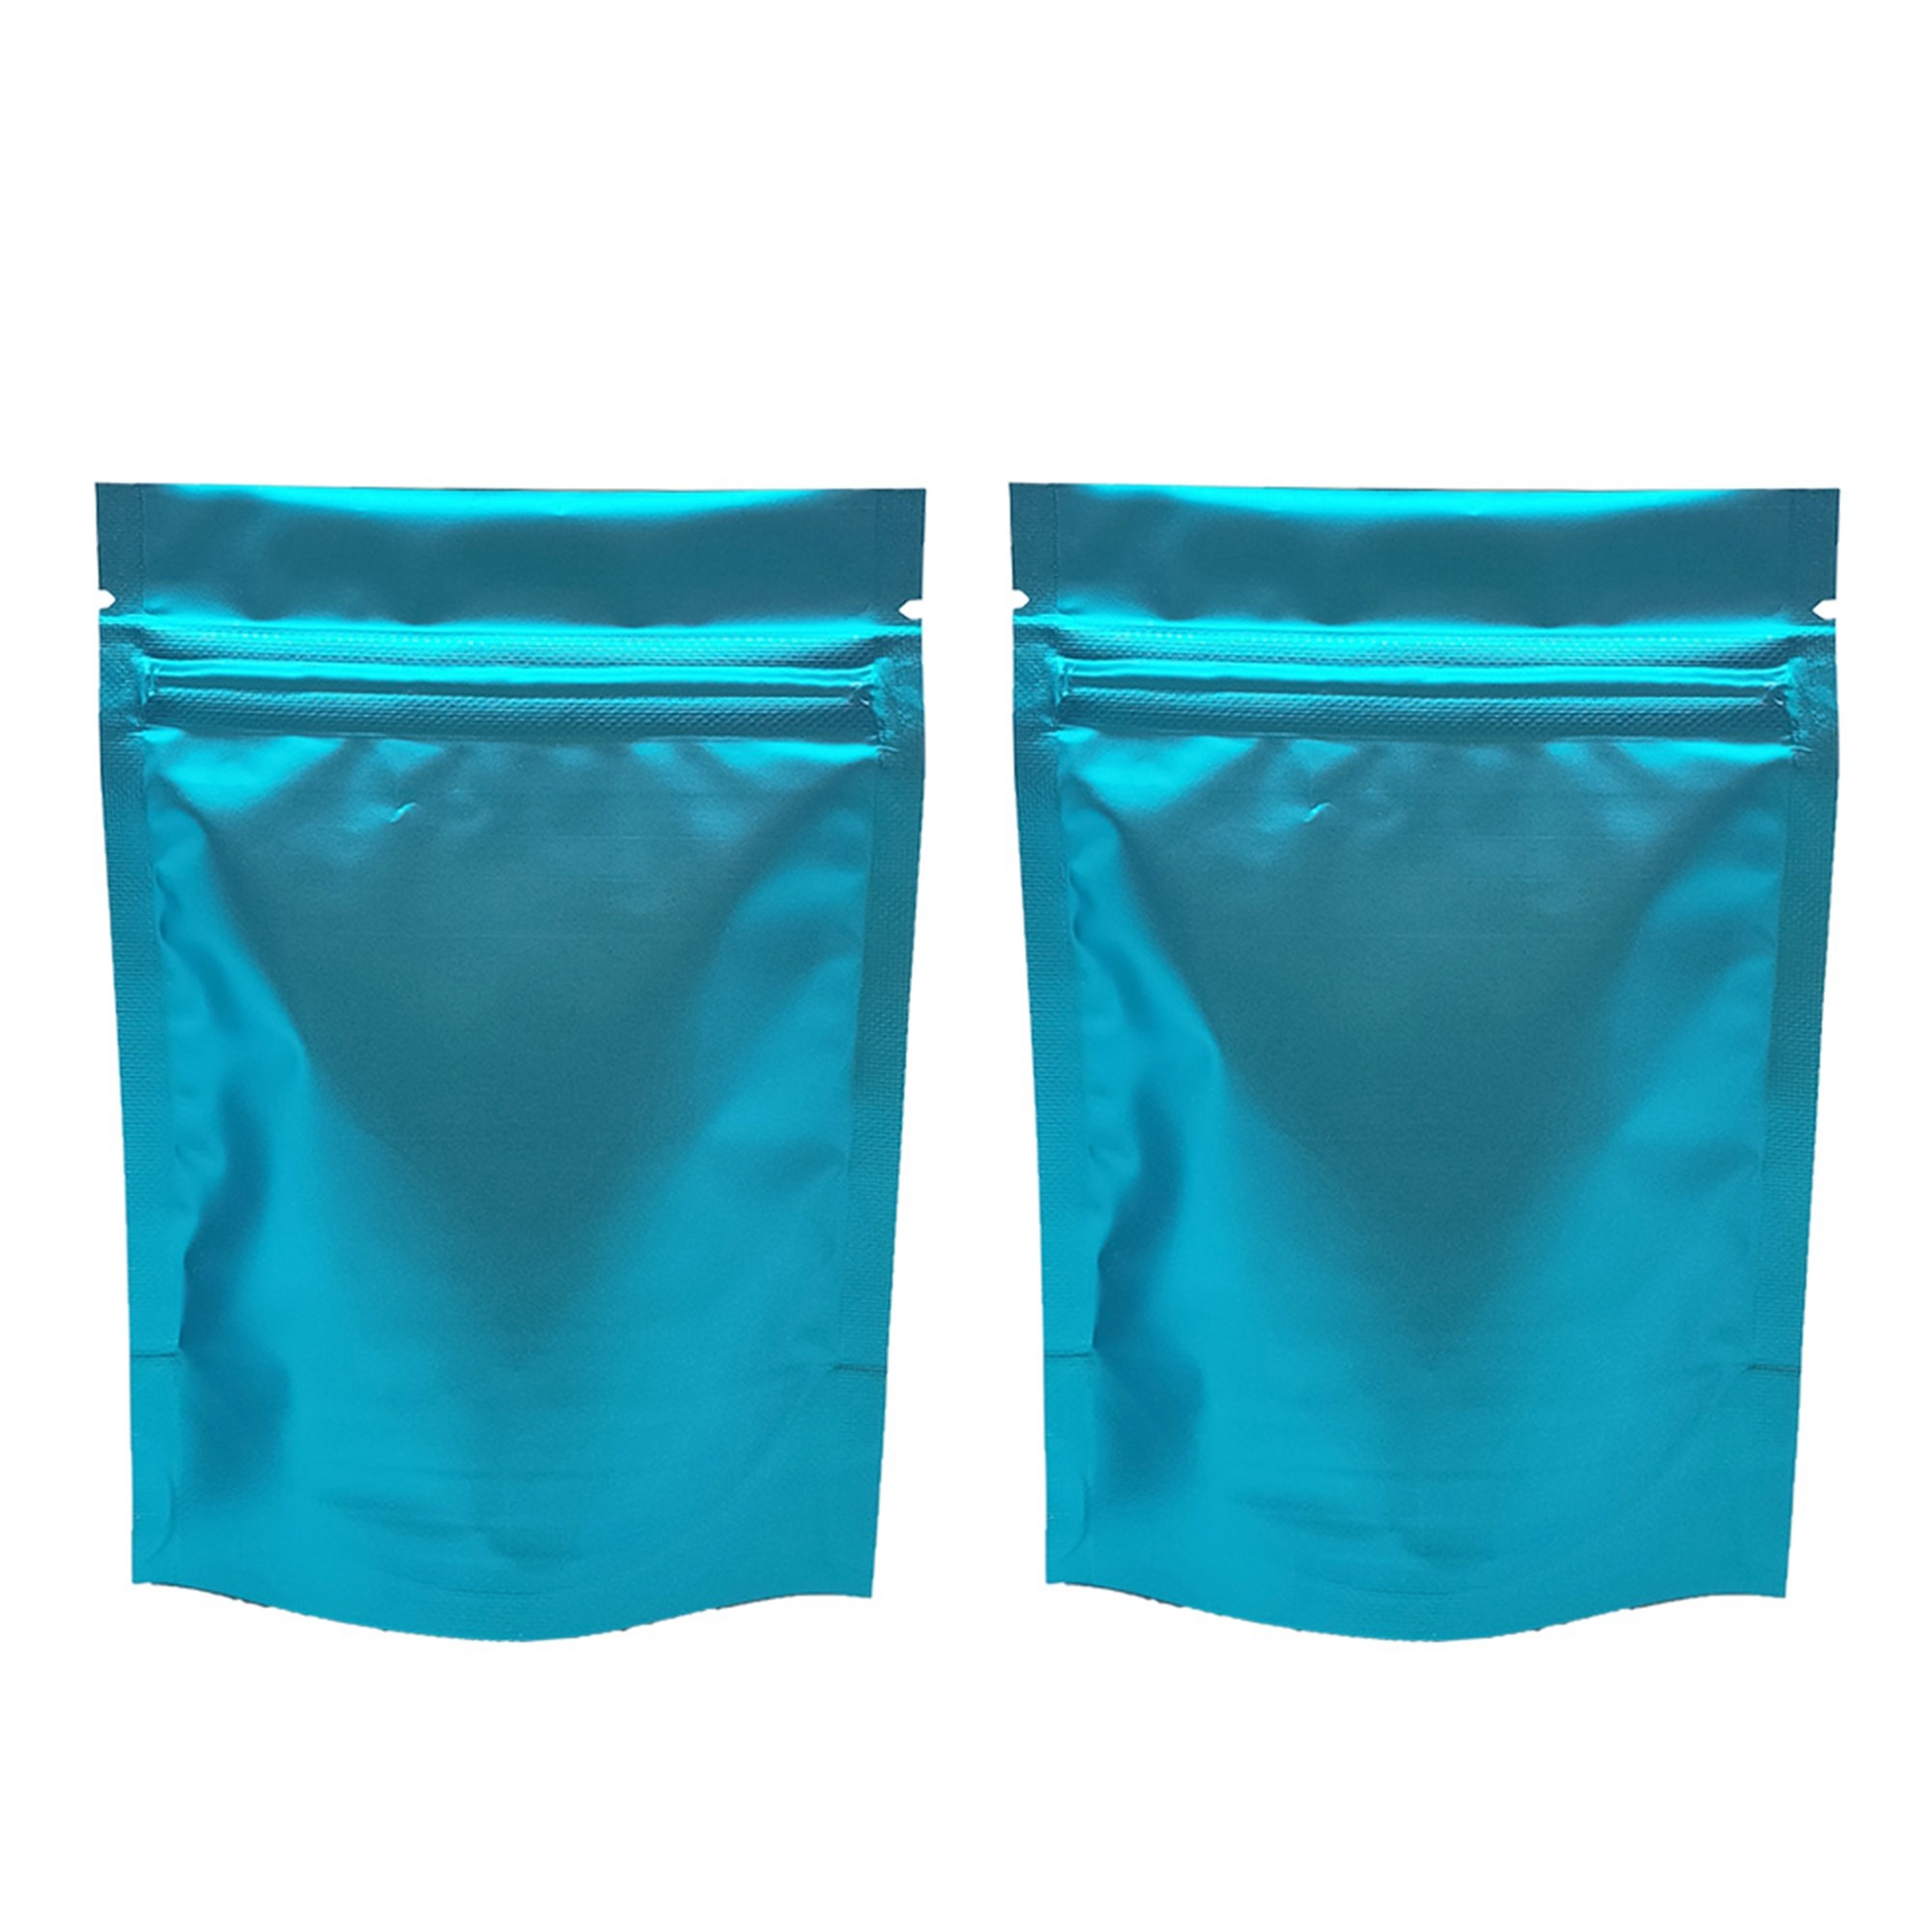 Matte Double-Sided Blue Metallic Foil Stand-Up Ziplock Bags 12 cm x 18 cm [4.7 inches x 7.1 inches] (500 Bags/Lot)